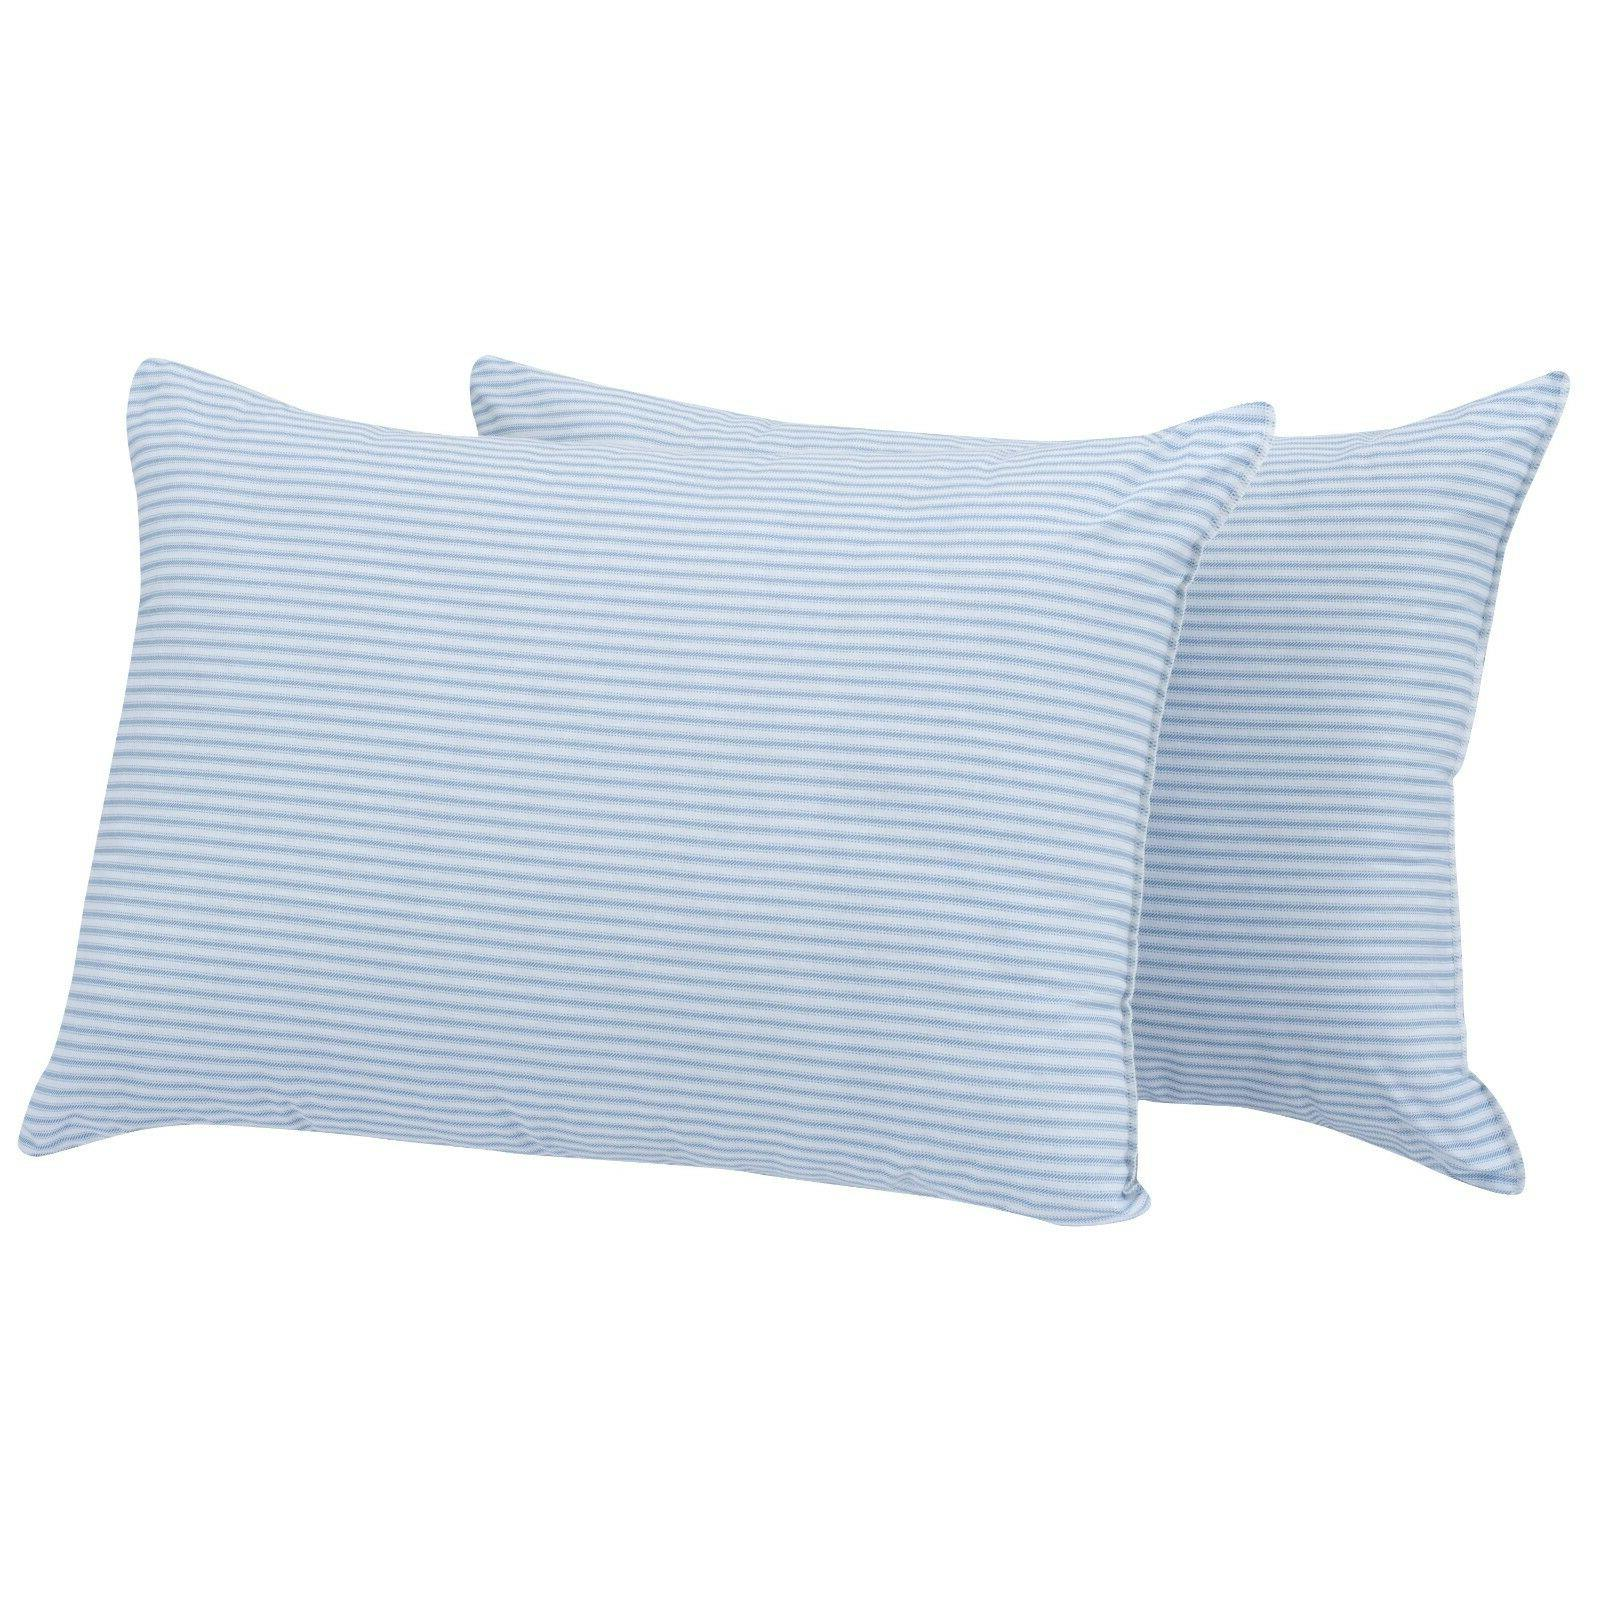 Huge Pillows Large Bed Sleep Striped 2pk